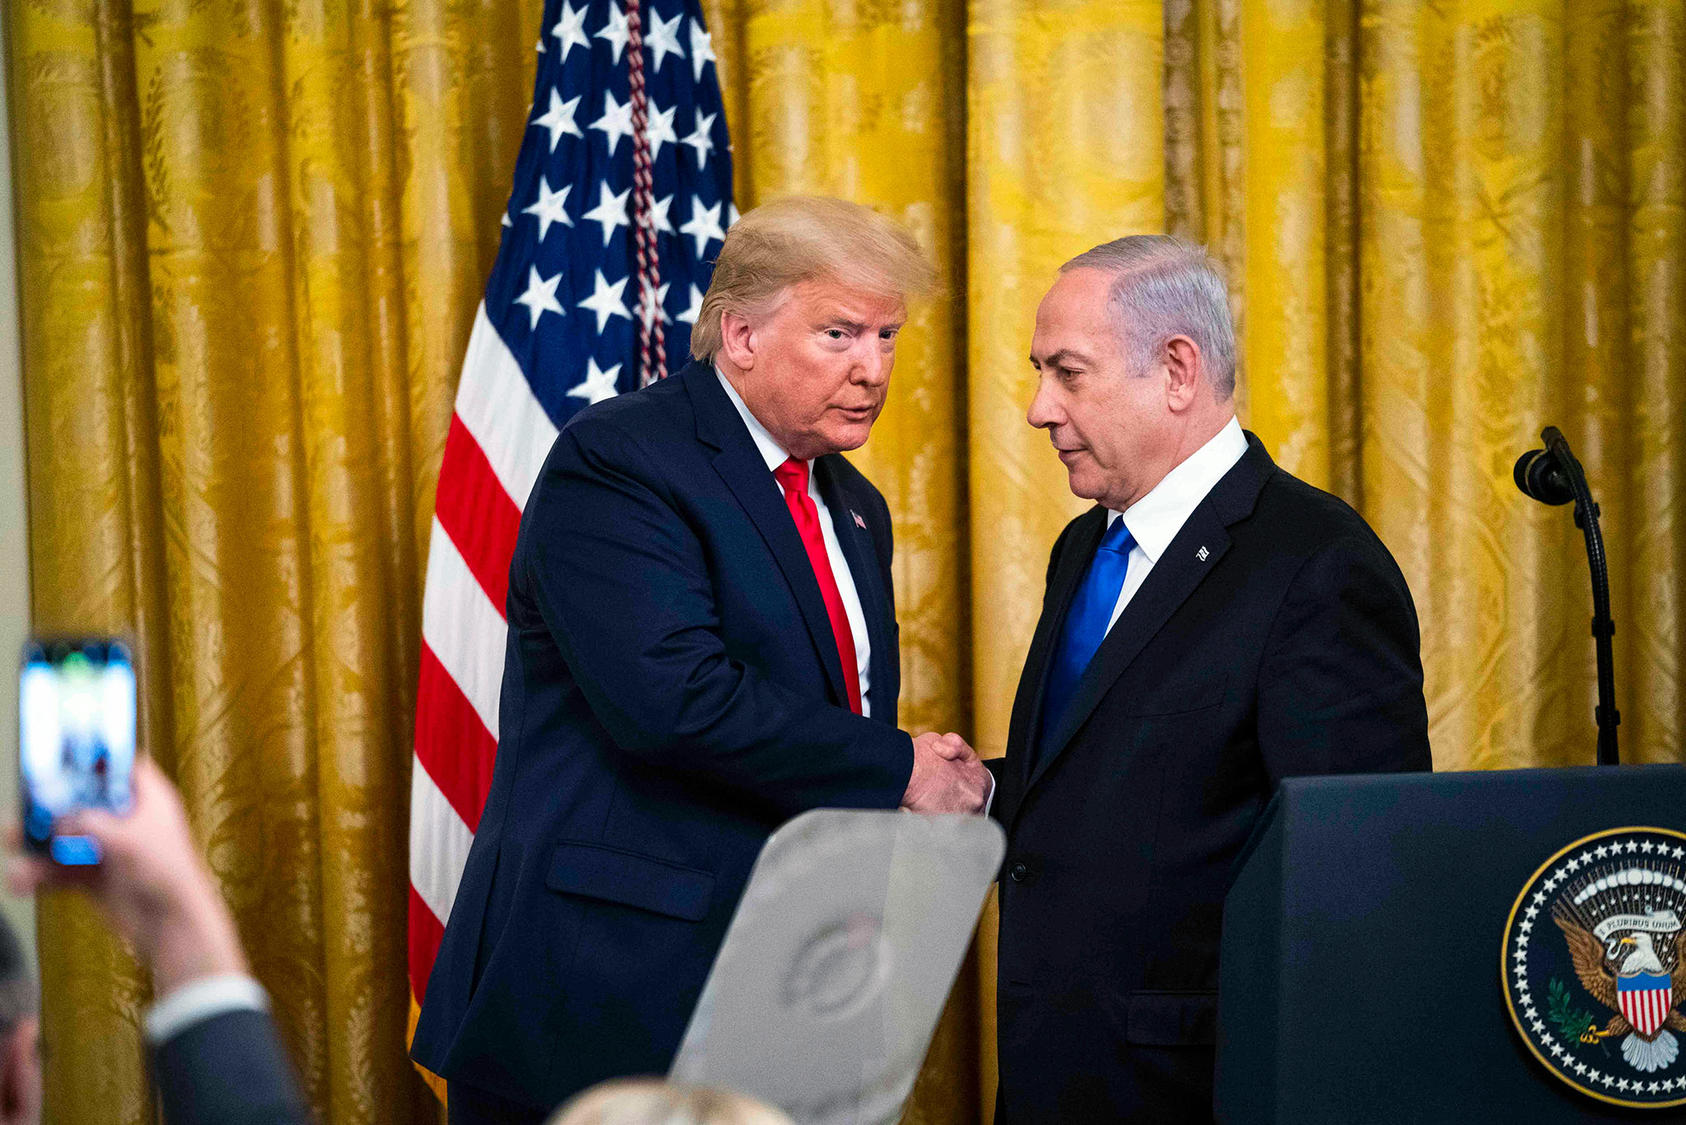 President Trump and Israeli Prime Minister Benjamin Netanyahu of Israel unveil Trump's Middle East peace plan at the White House in January 2020. (Doug Mills/The New York Times)